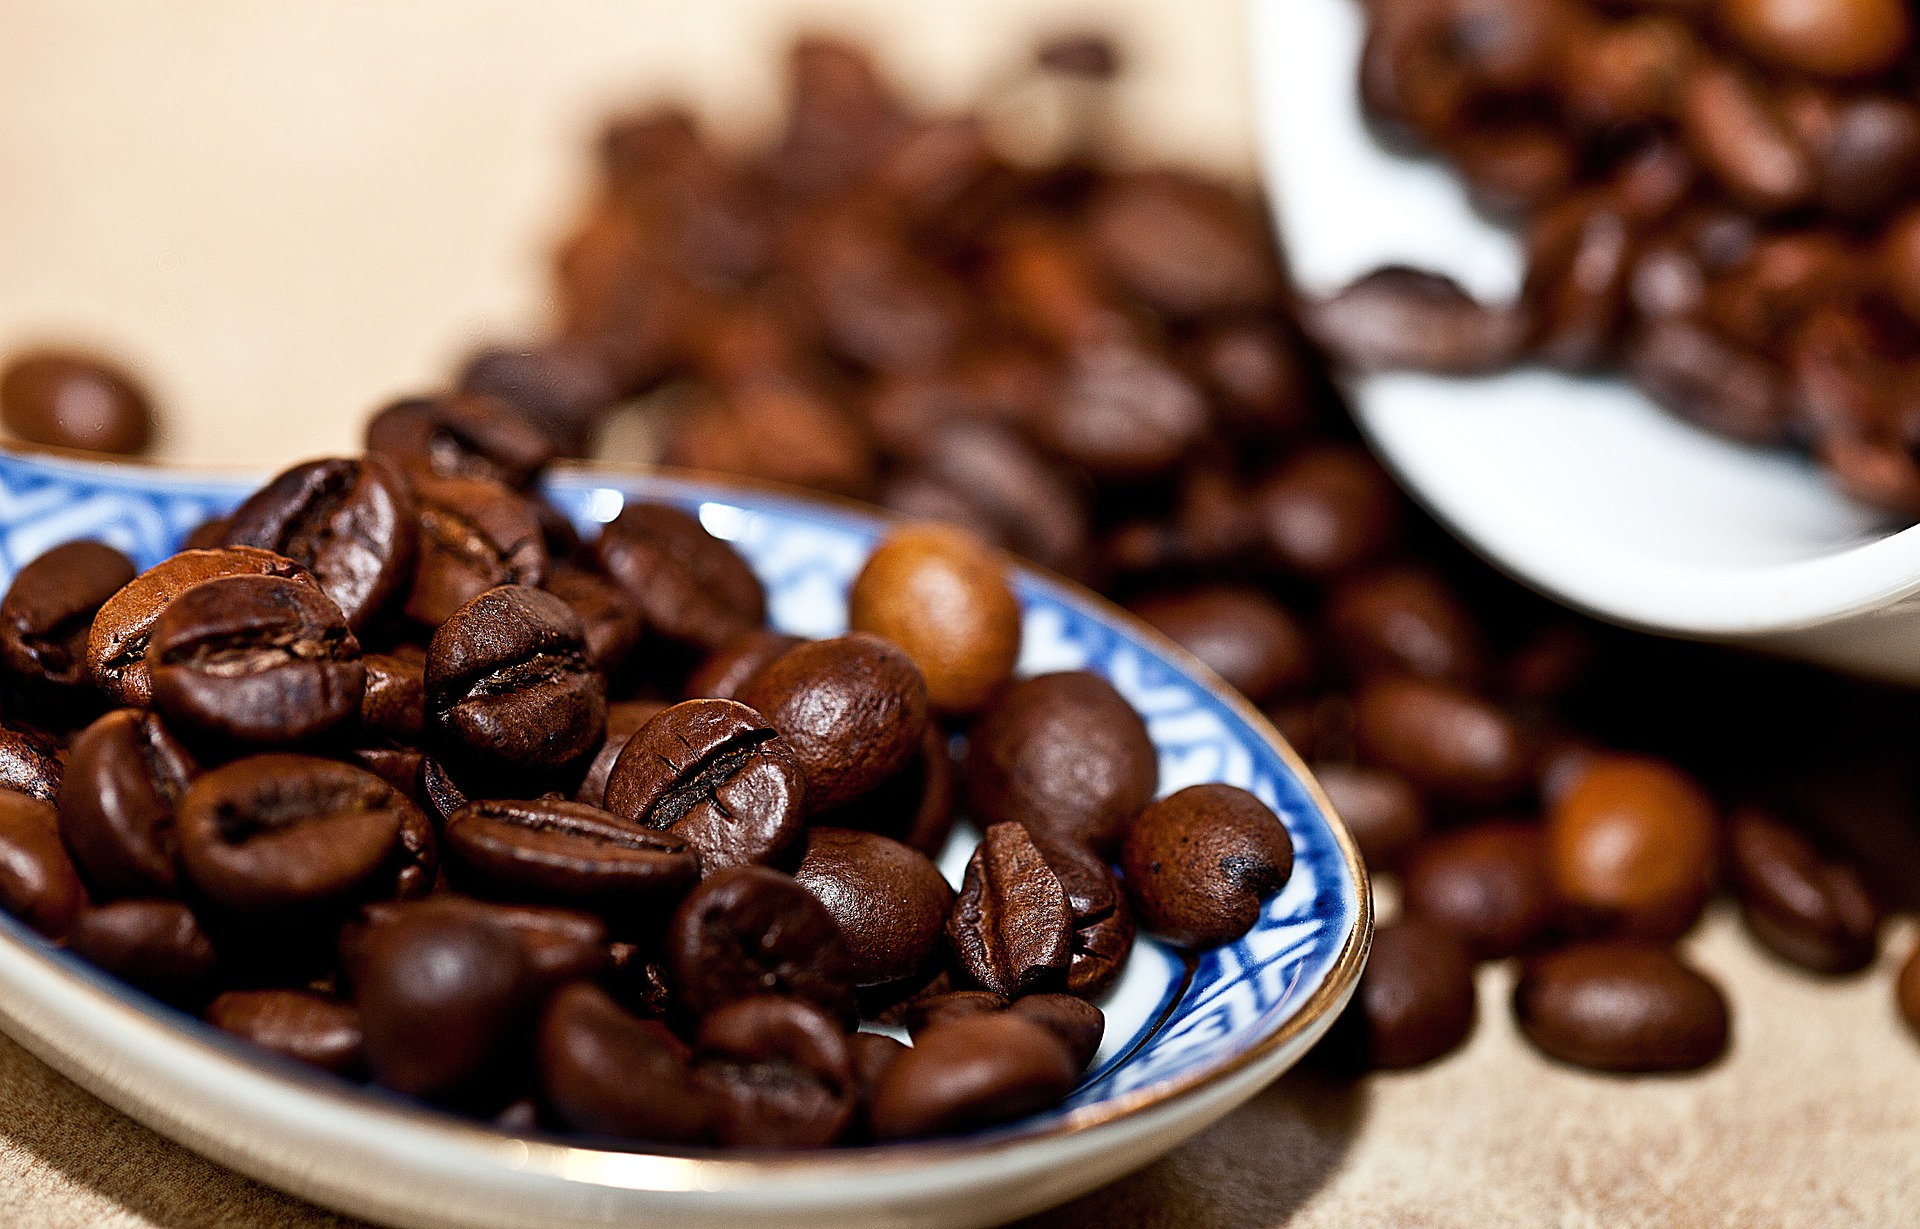 Regular coffee consumption could reduce different health risks. (Photo: Uroburos/Pixabay CC0